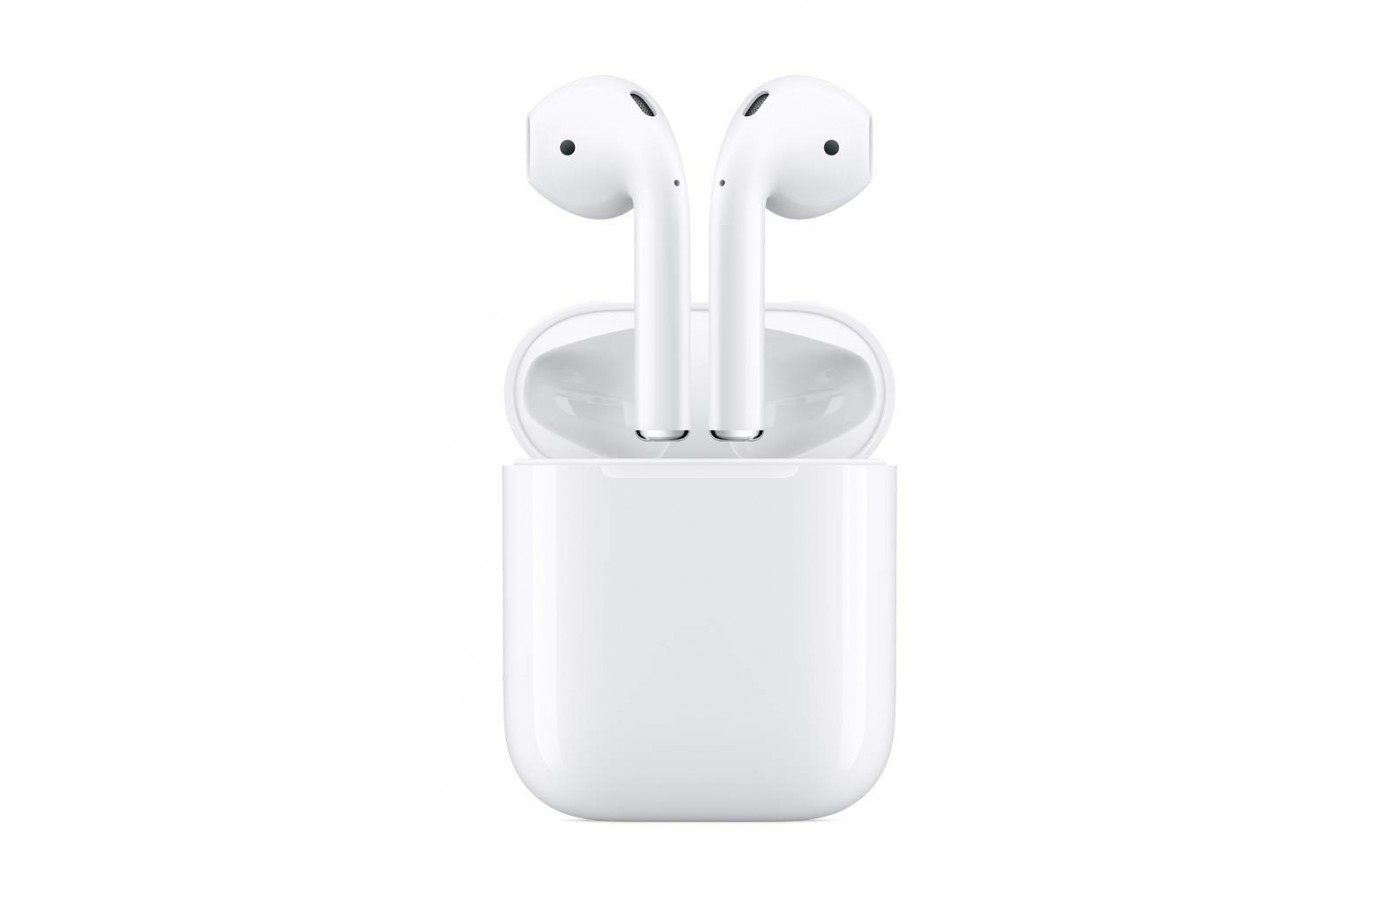 Apple AirPods front